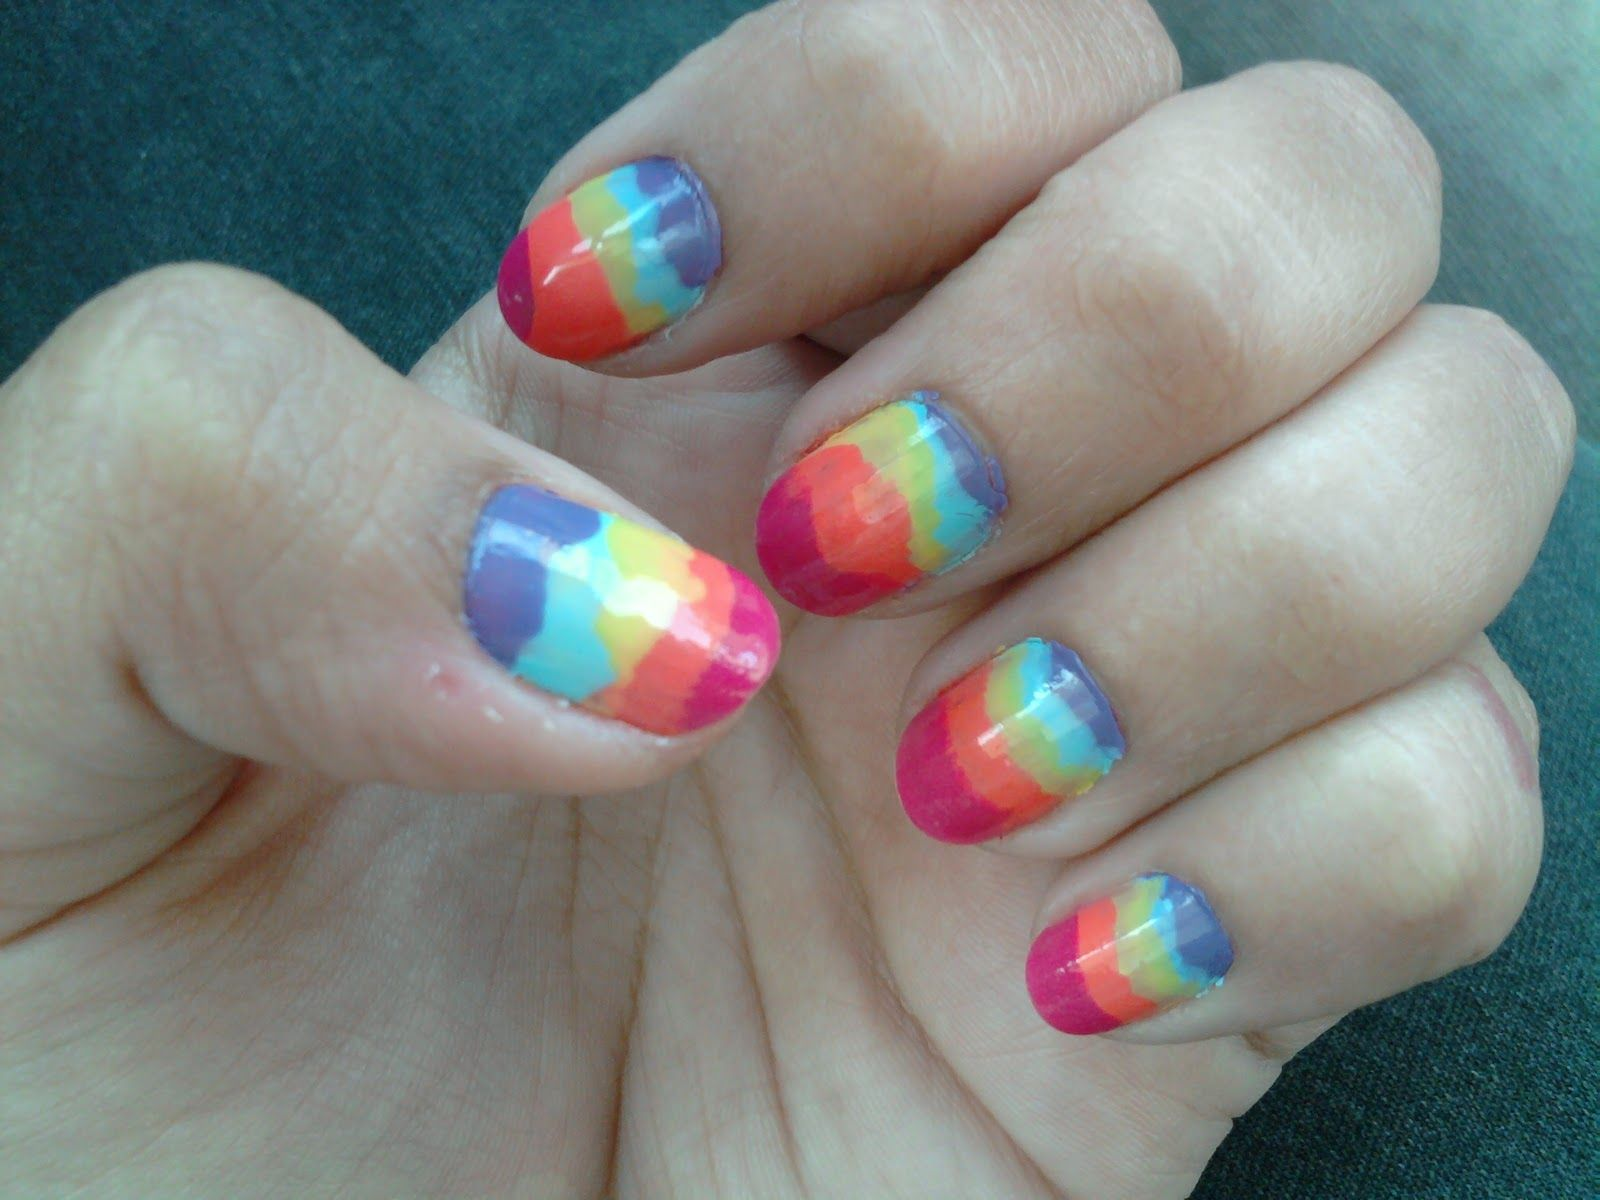 Cute Nail Designs | Cute Rainbow Nail Art Design | Women Fashion and ...